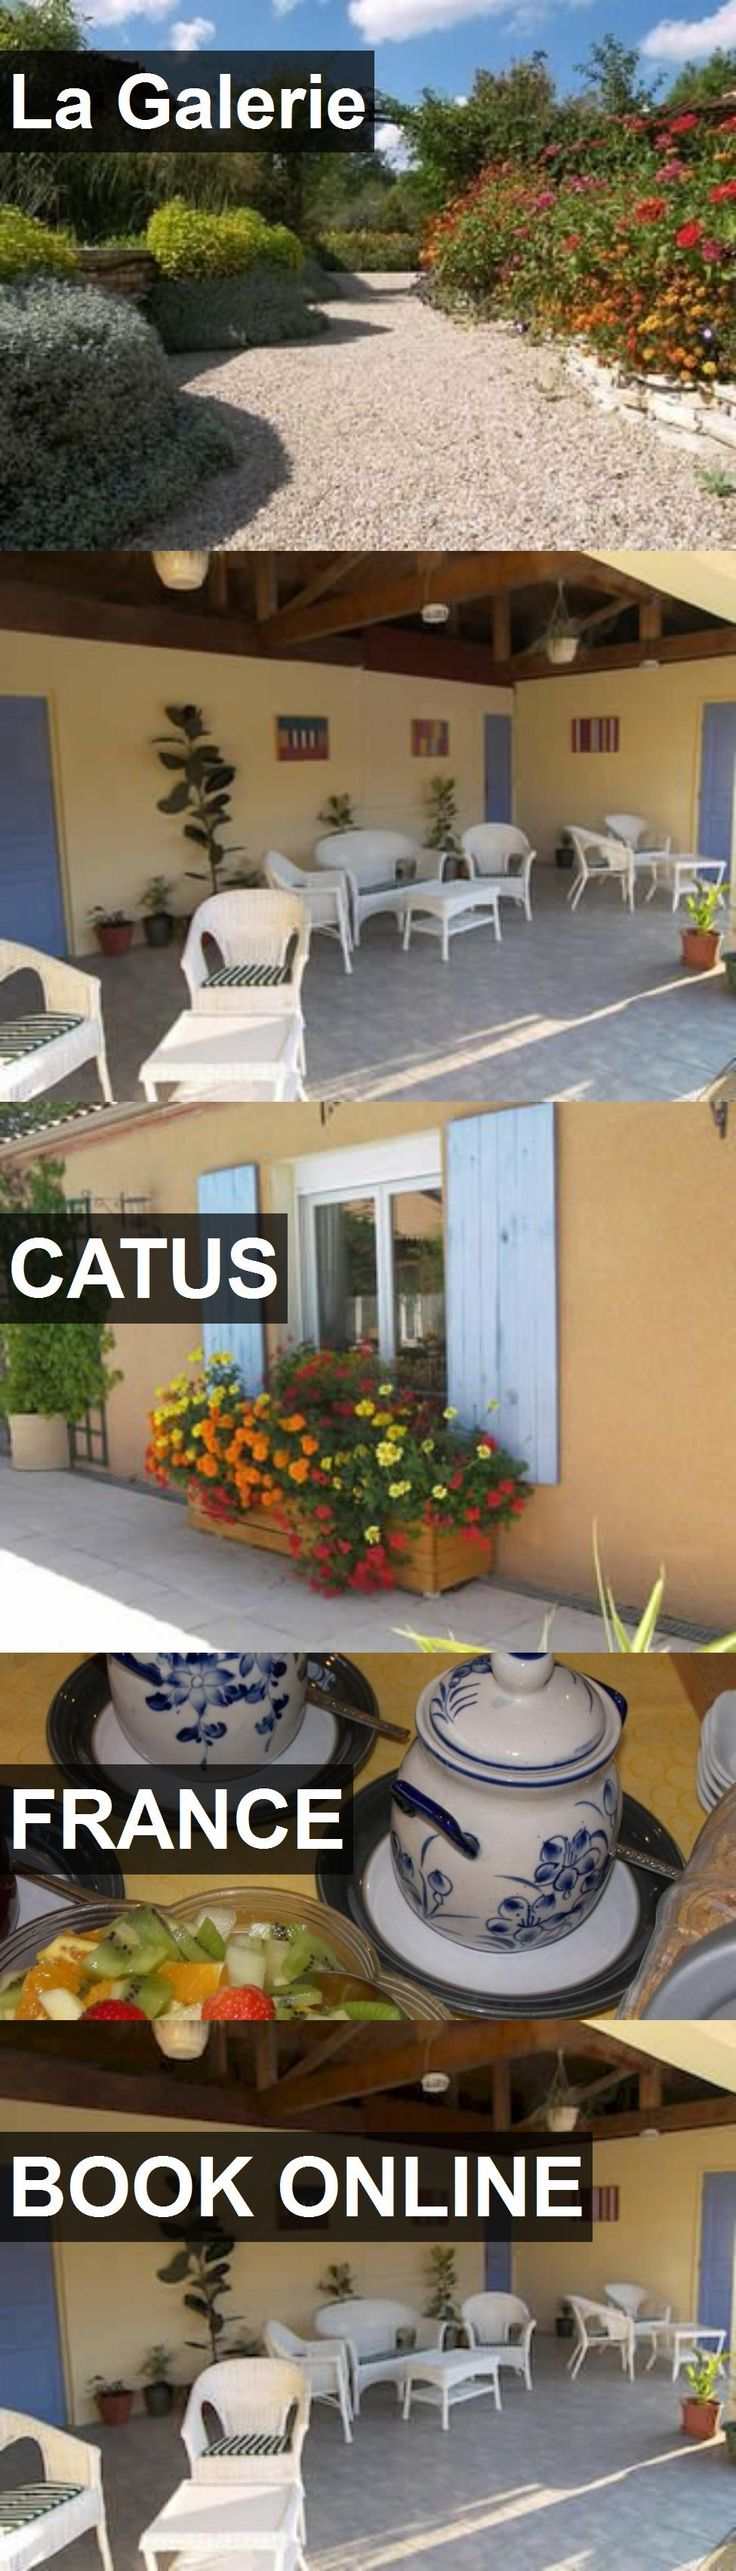 Hotel La Galerie in Catus, France. For more information, photos, reviews and best prices please follow the link. #France #Catus #travel #vacation #hotel